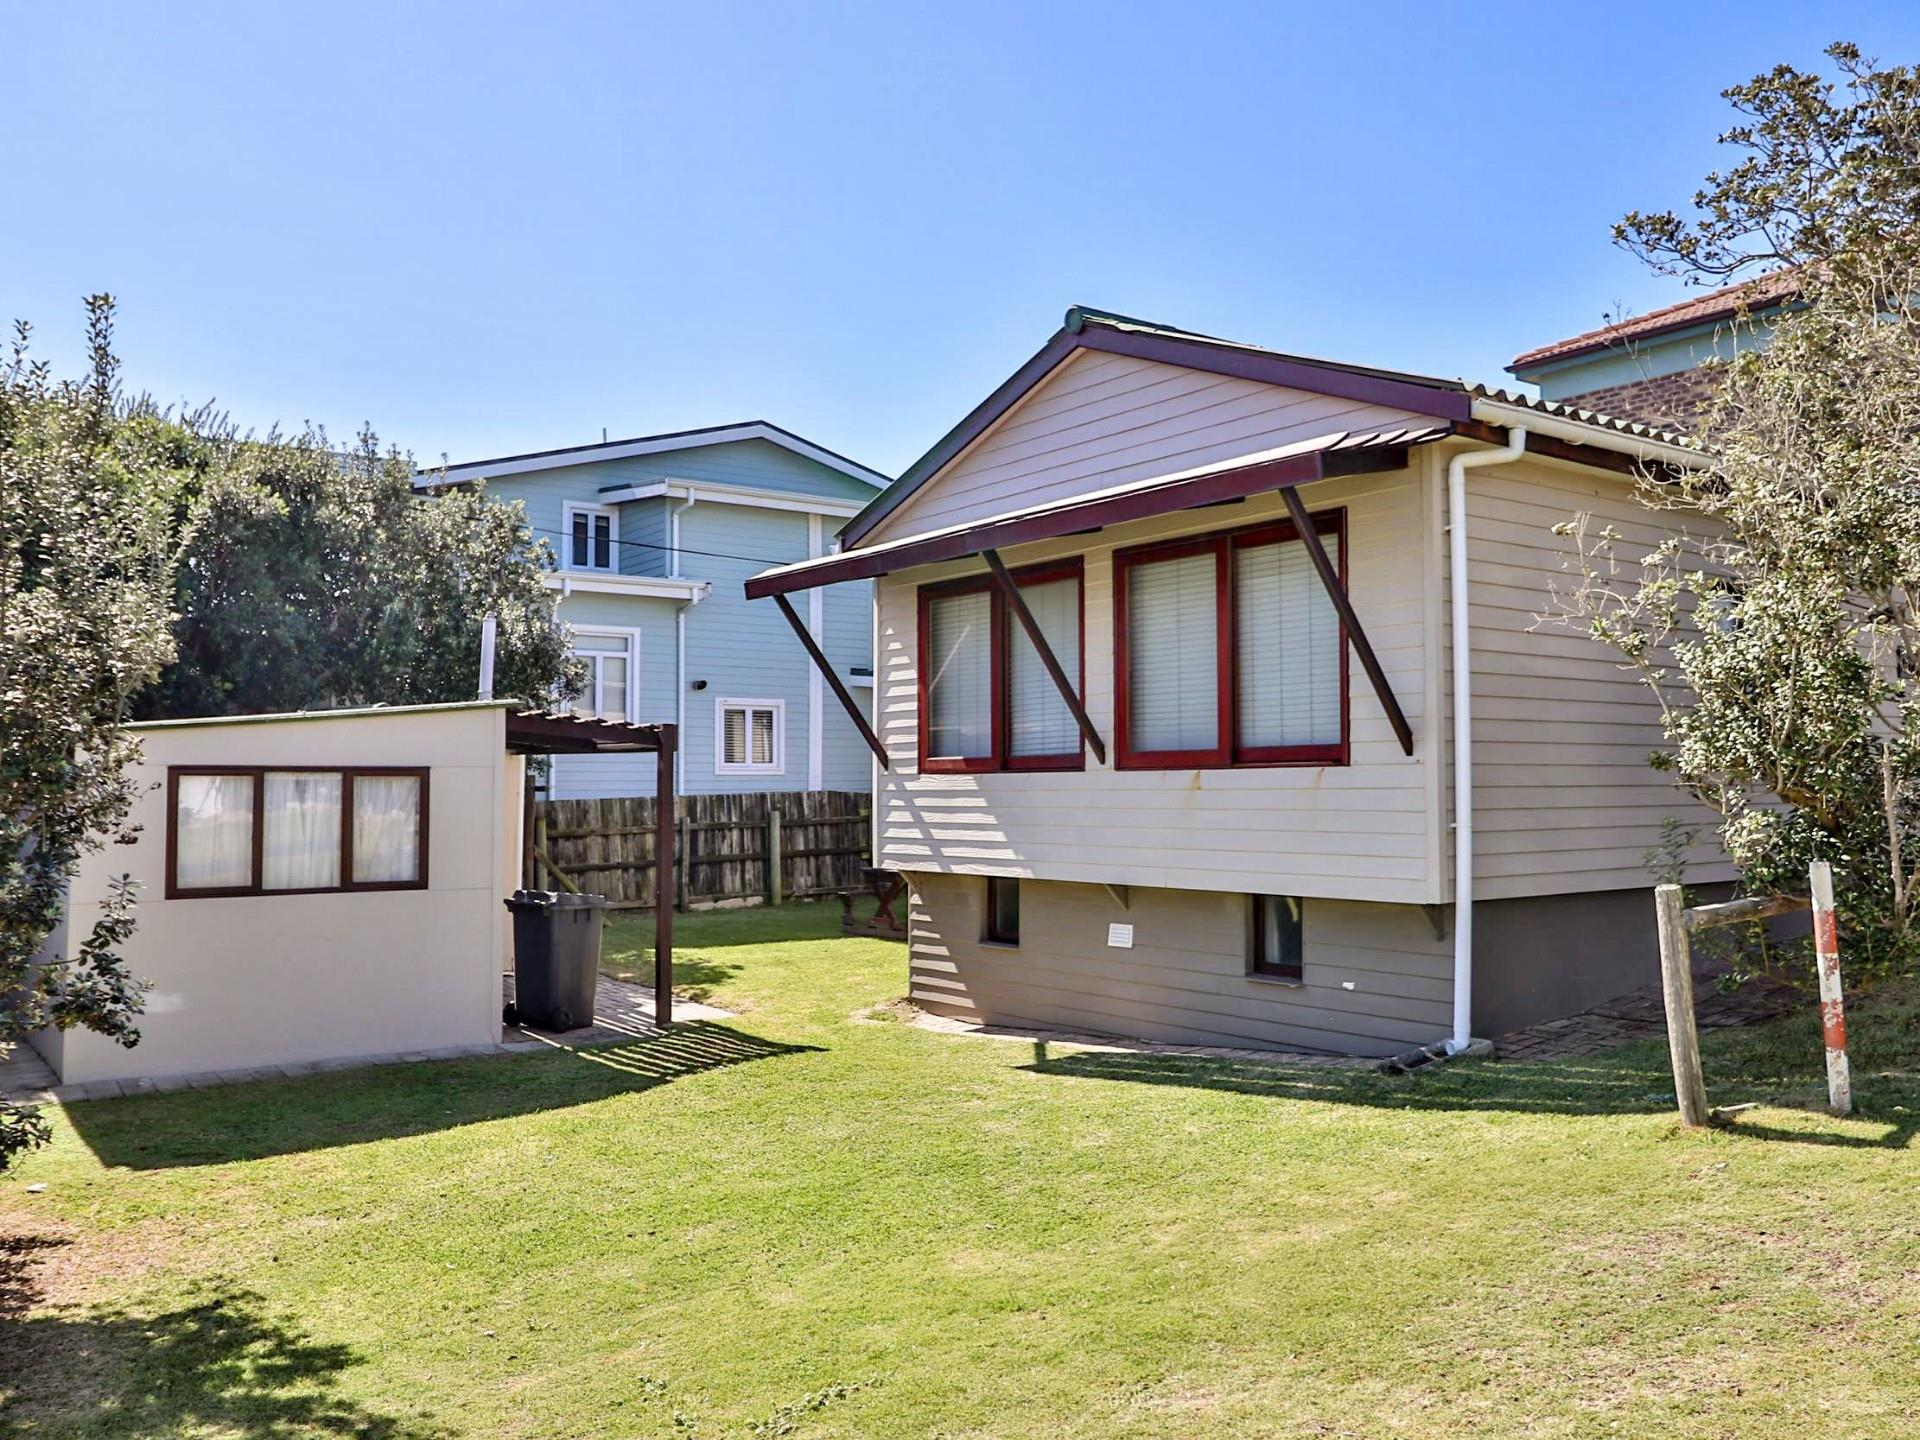 4 Bedroom House For Sale in Buffalo Bay